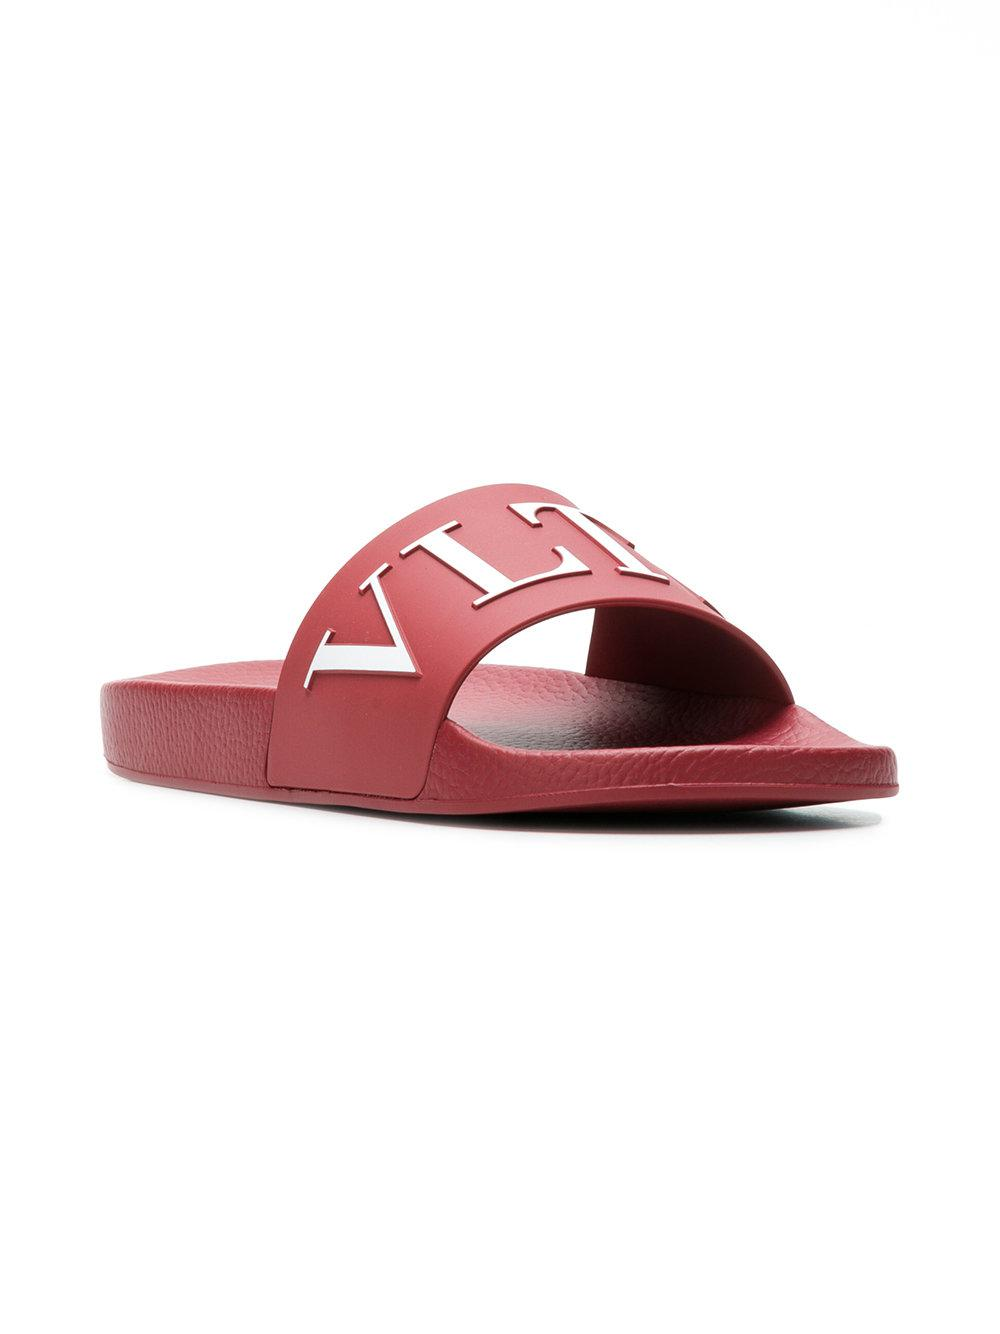 Valentino logo print slides outlet online shop recommend cheap price wwkQKAzSA